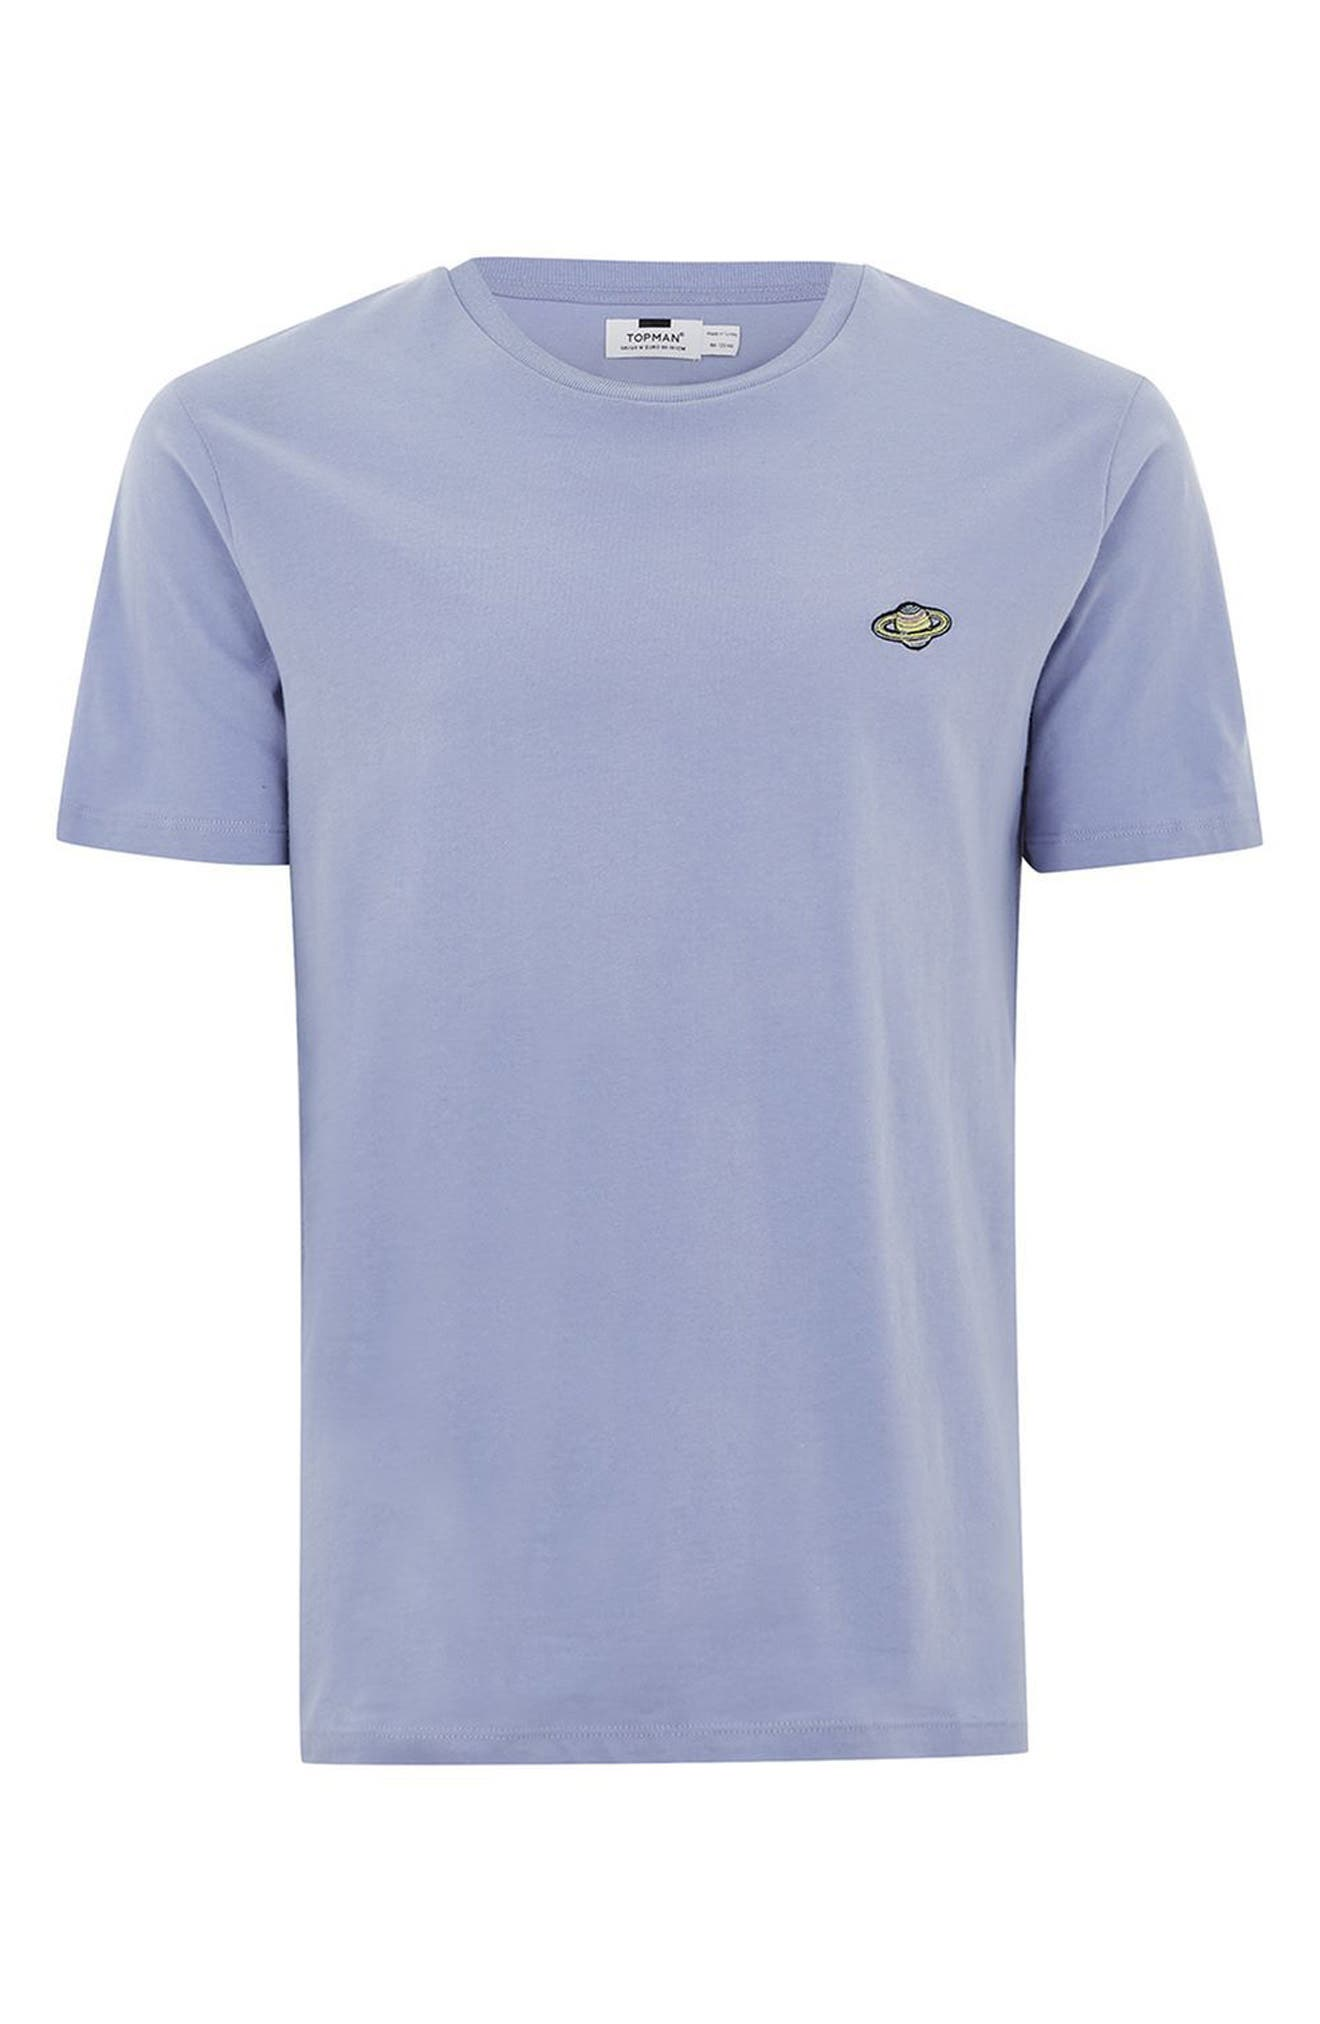 TOPMAN,                             Saturn Logo T-Shirt,                             Alternate thumbnail 4, color,                             530